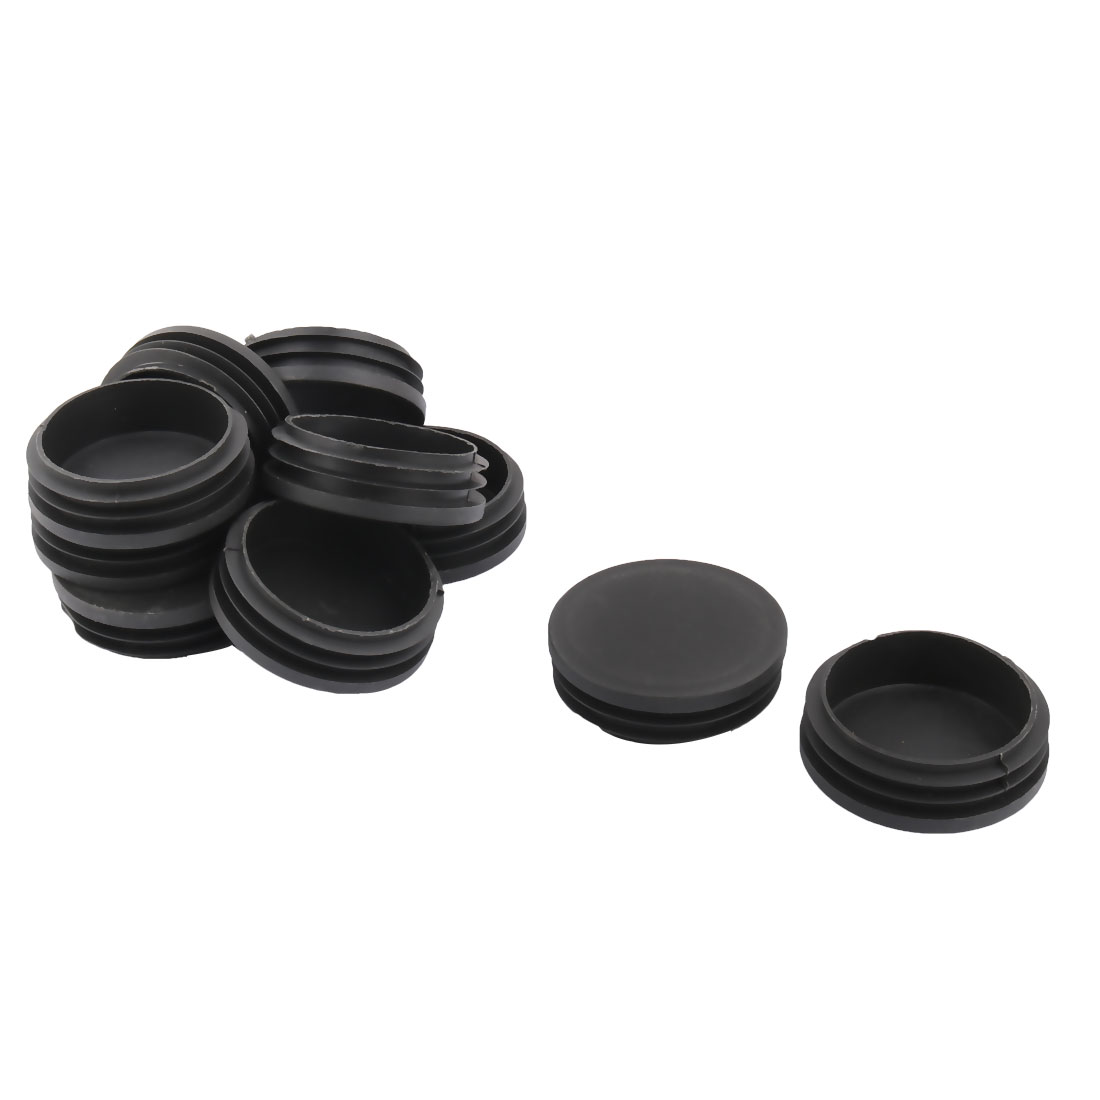 Desk Legs Plastic Round Design Tube Pipe Inserts End Blanking Caps Black 76mm Dia 10pcs